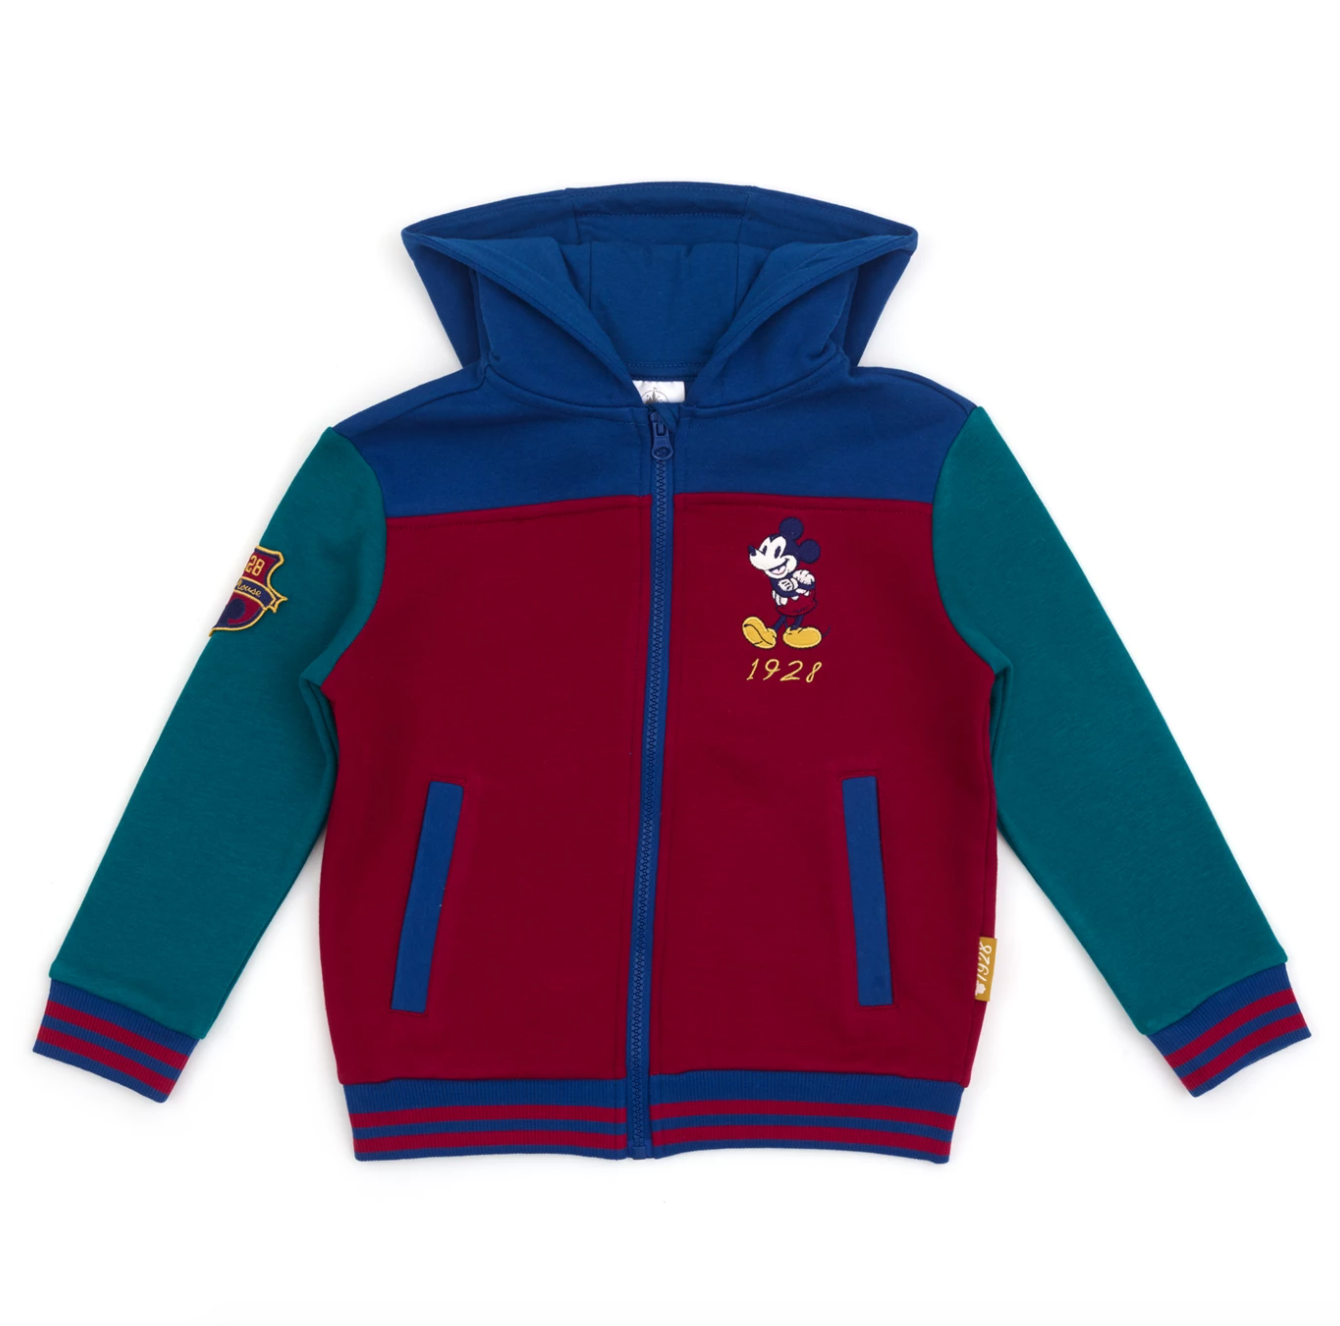 a zip-up sweatshirt with mickey on it and red, green, and blue coloring